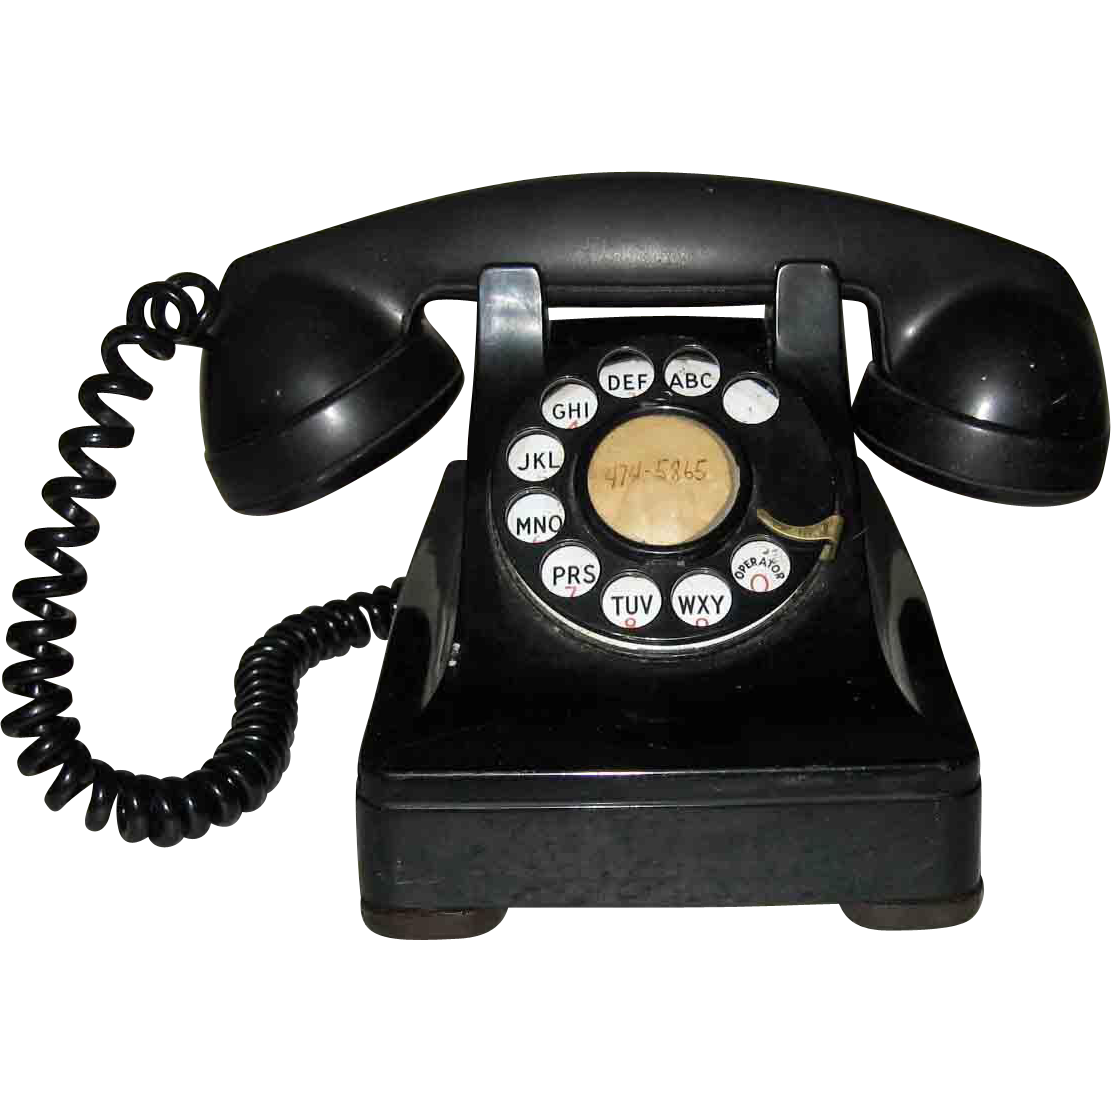 Telephone transparent retro. Bell system western electric